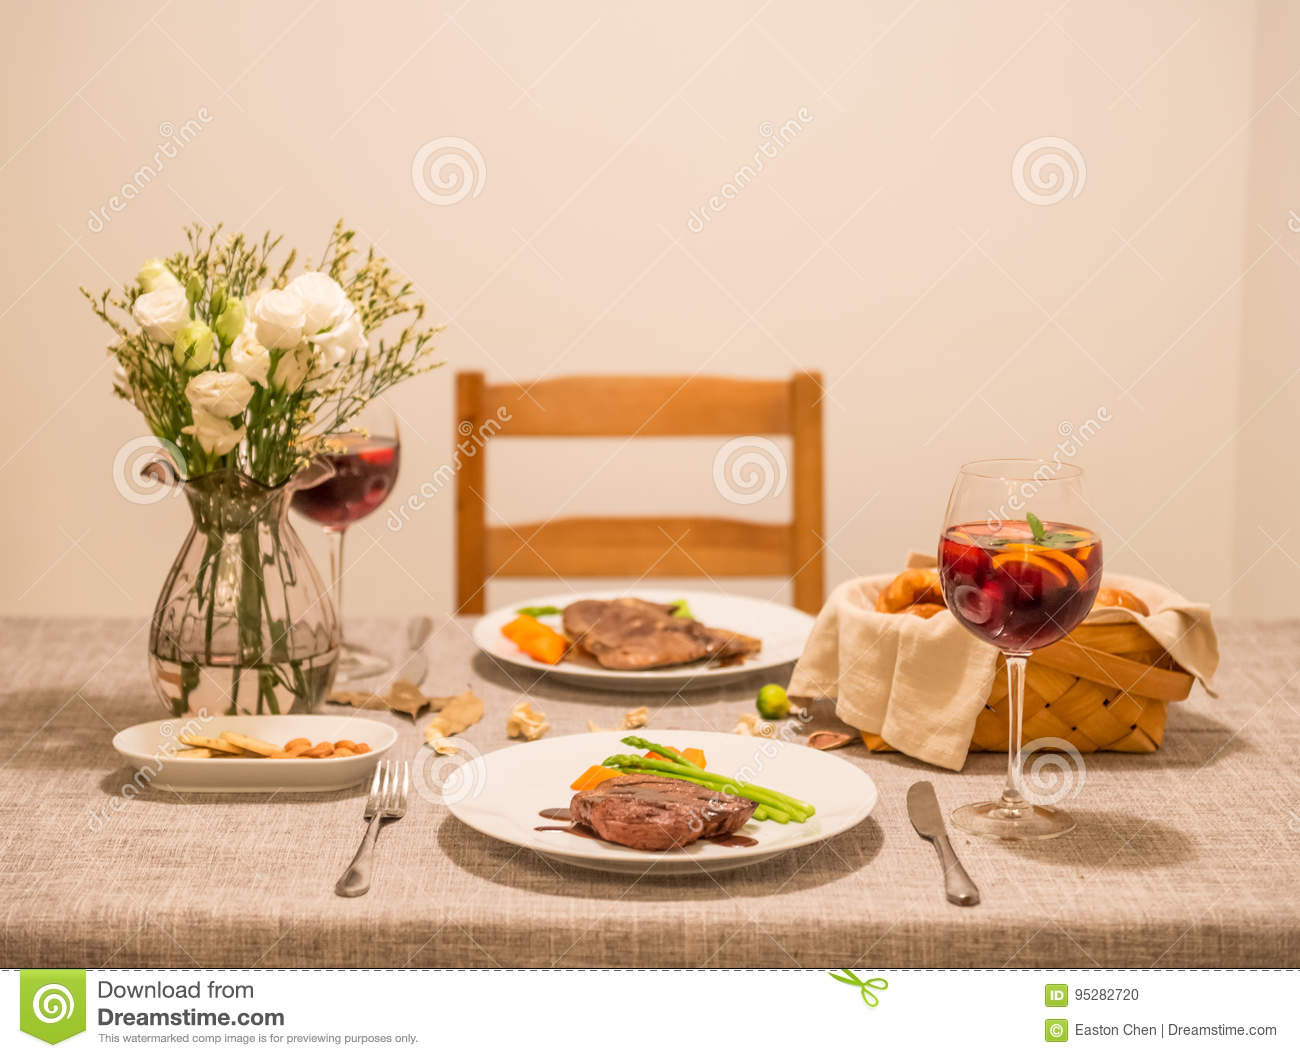 The food on the table and wine